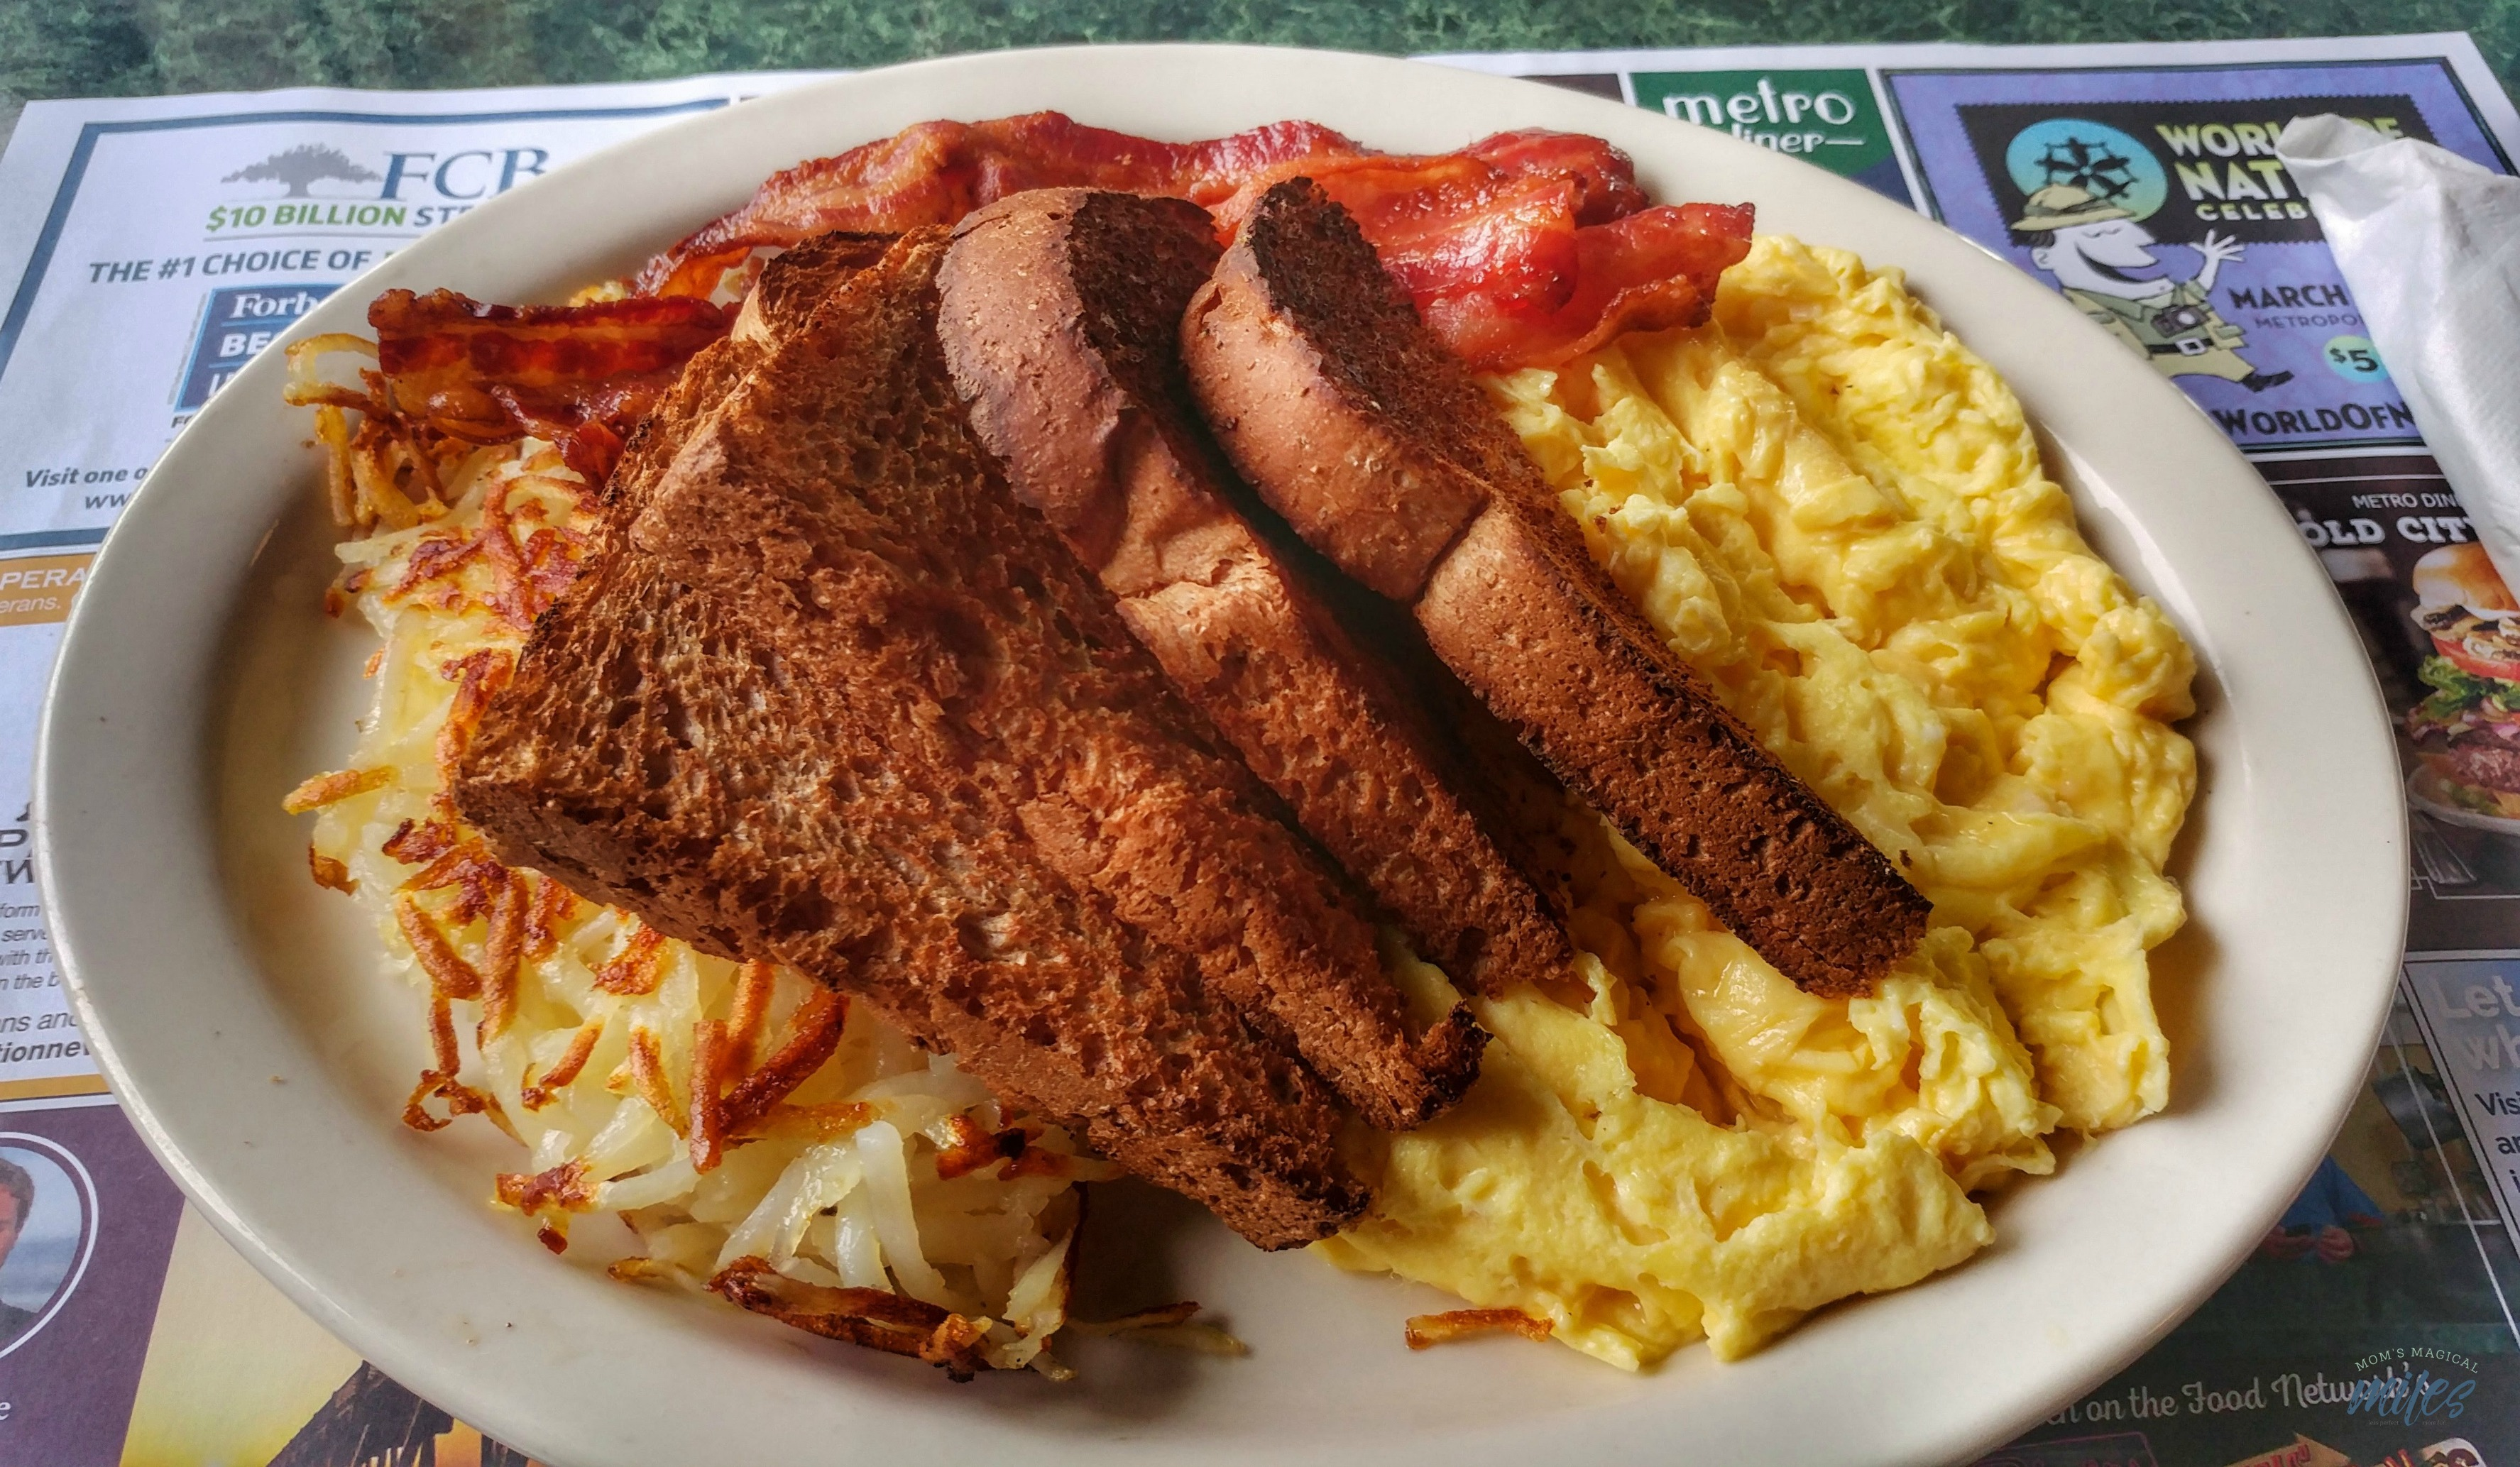 The Metro Diner in Jacksonville Beach, Fl is the perfect stop to fill hungry bellies!